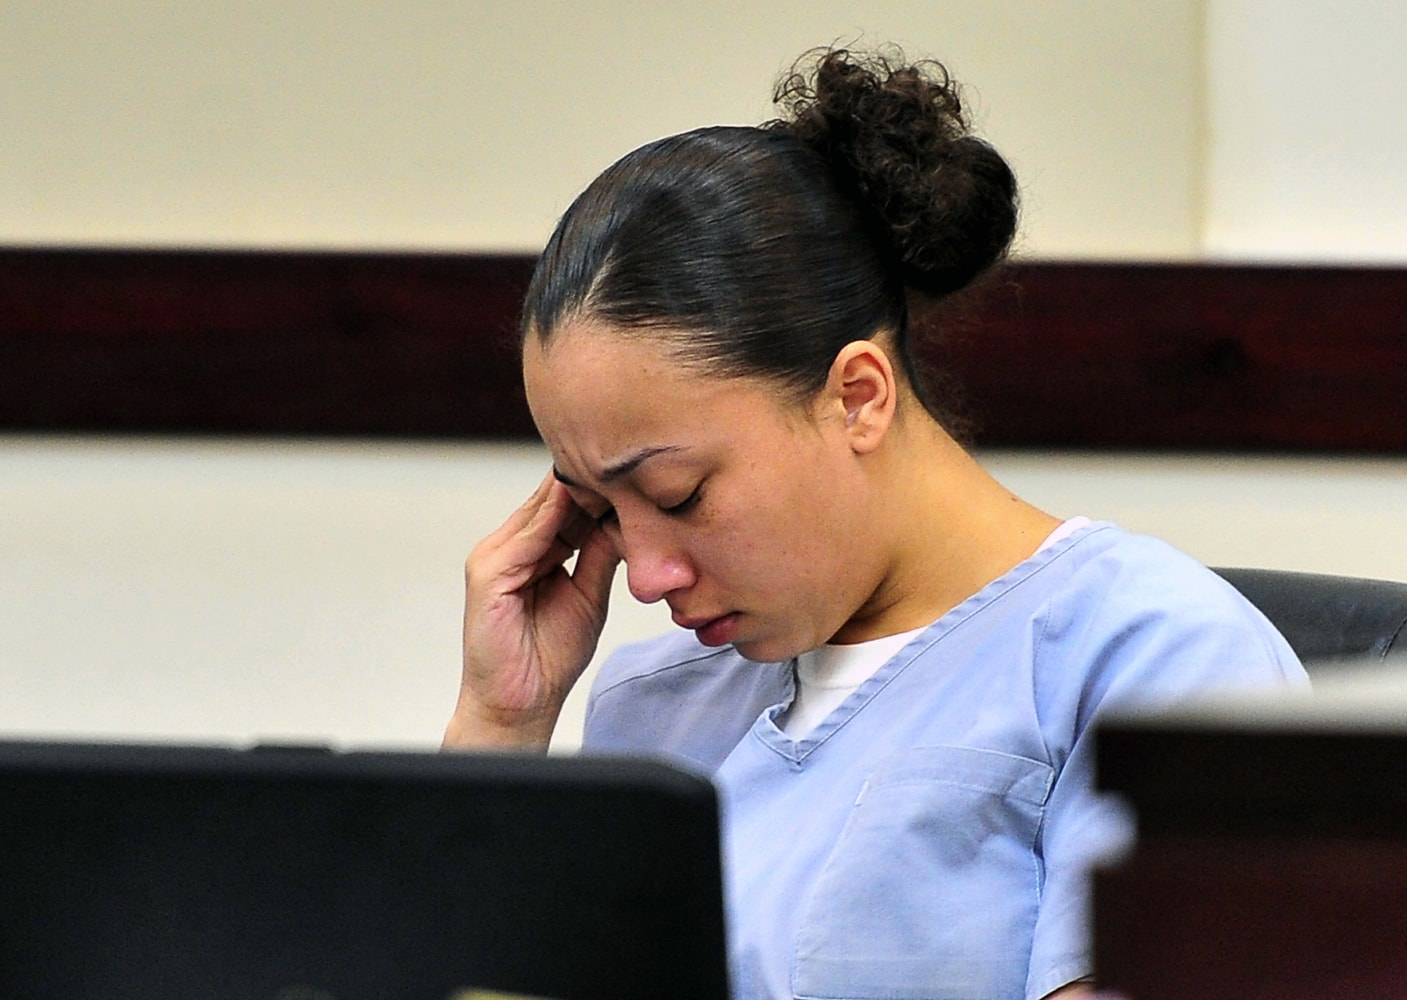 Pictures Of Cyntoia Brown >> Who is Cyntoia Brown? Celebrities rally behind teen sentenced to life in prison - NBC News